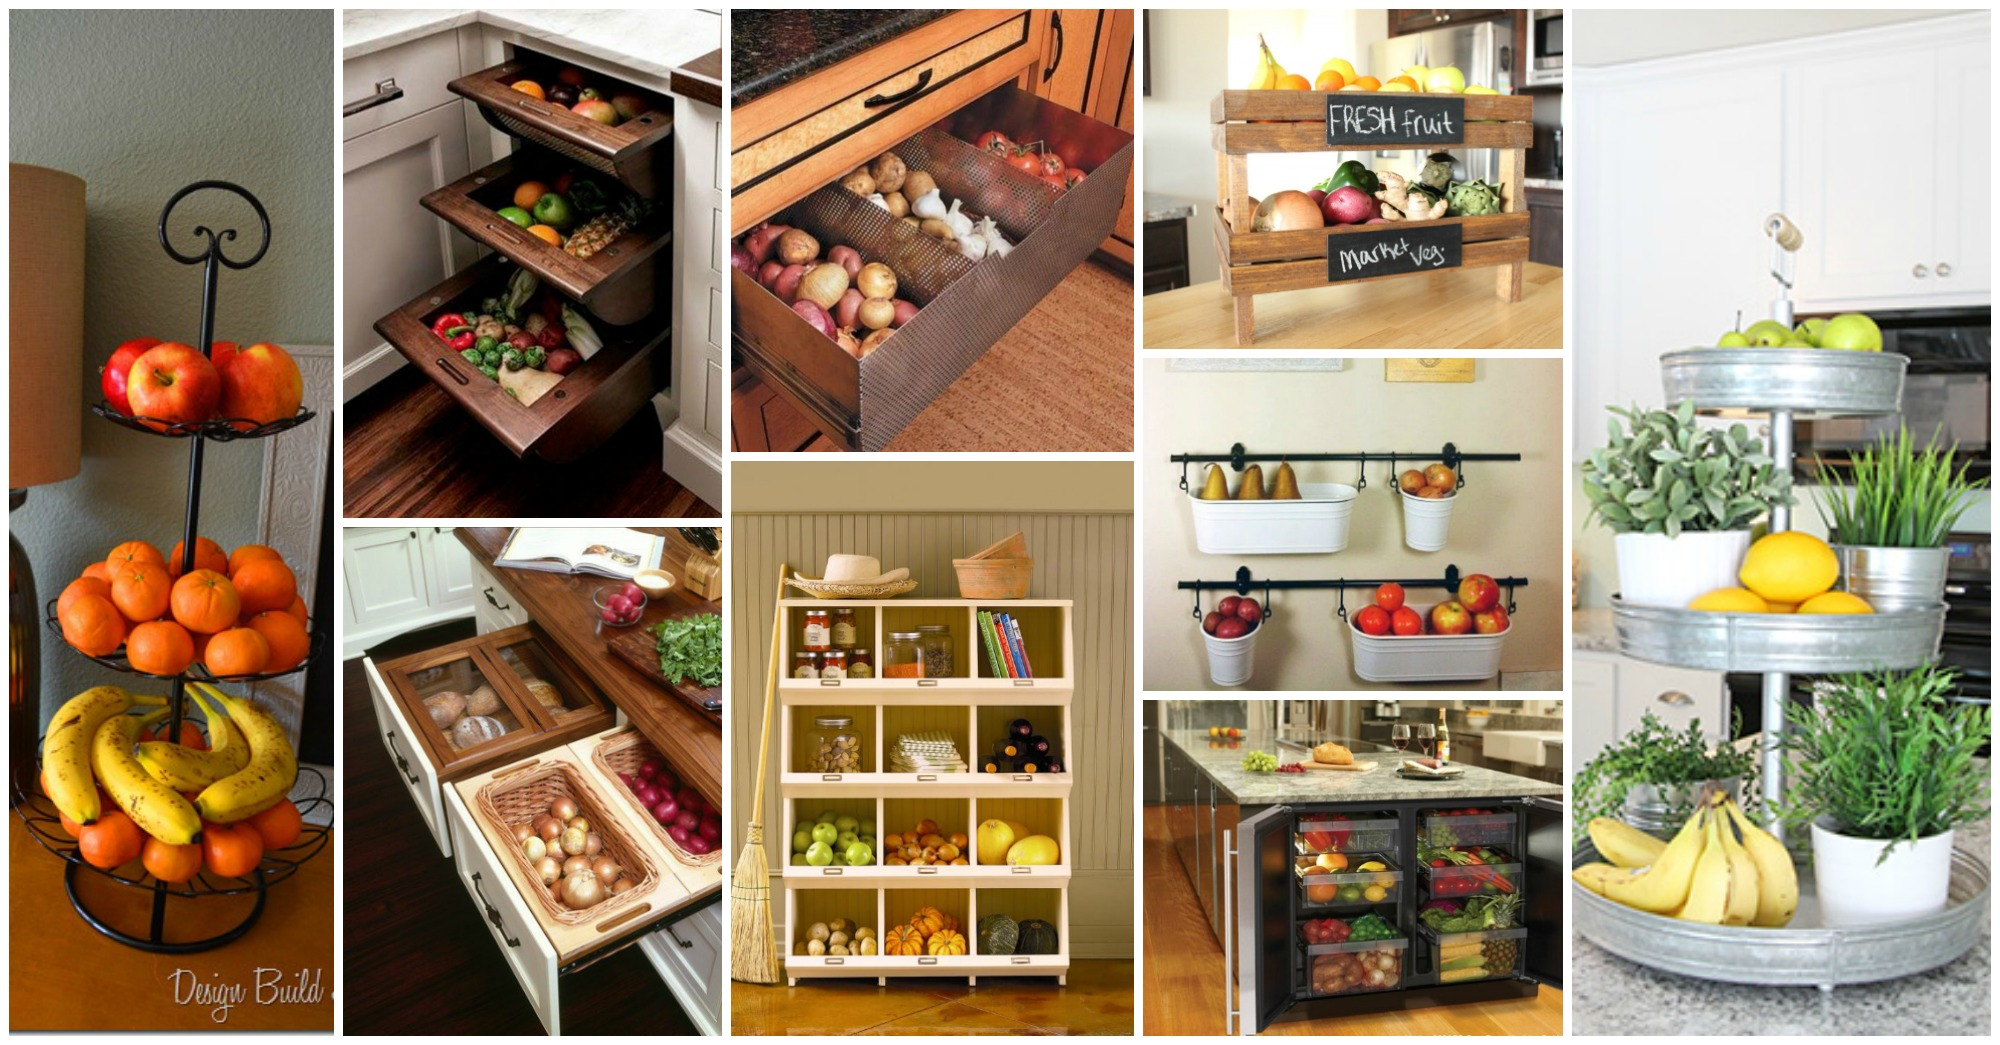 ad-insanely-clever-storage -solutions-for-furits-and-vegetables-coverimage